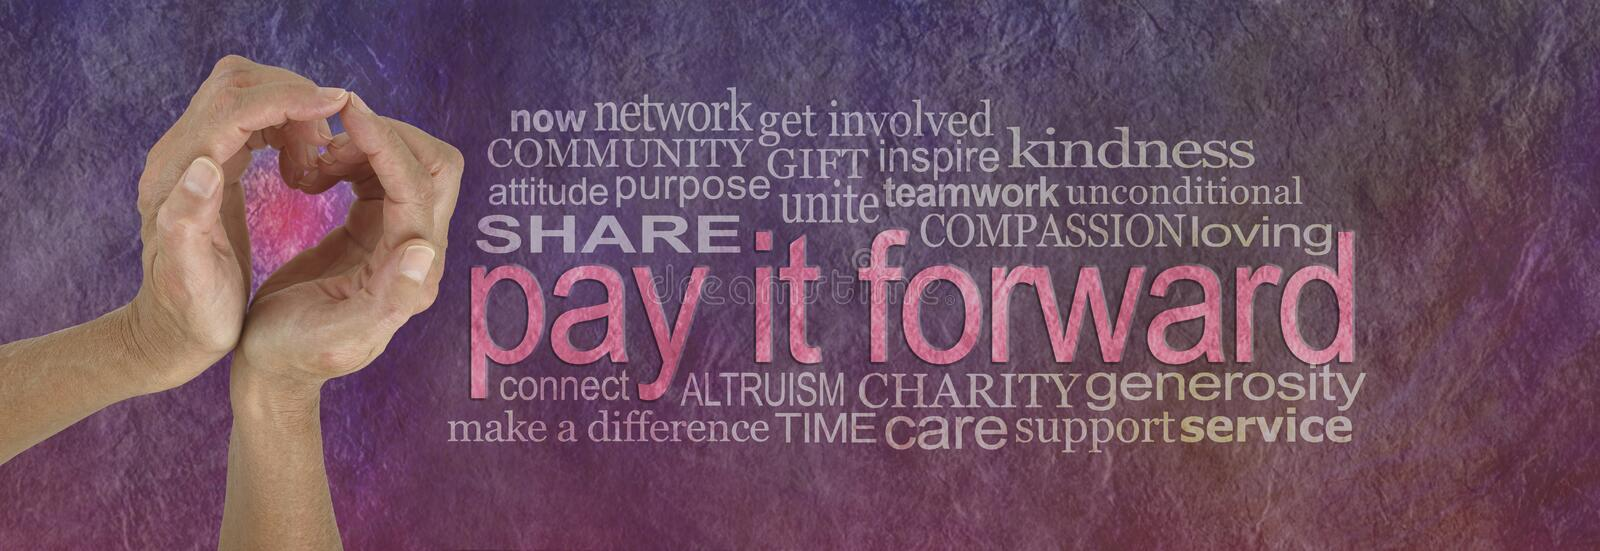 PAY IT FORWARD With Love Word Cloud Stock Photo - Image of